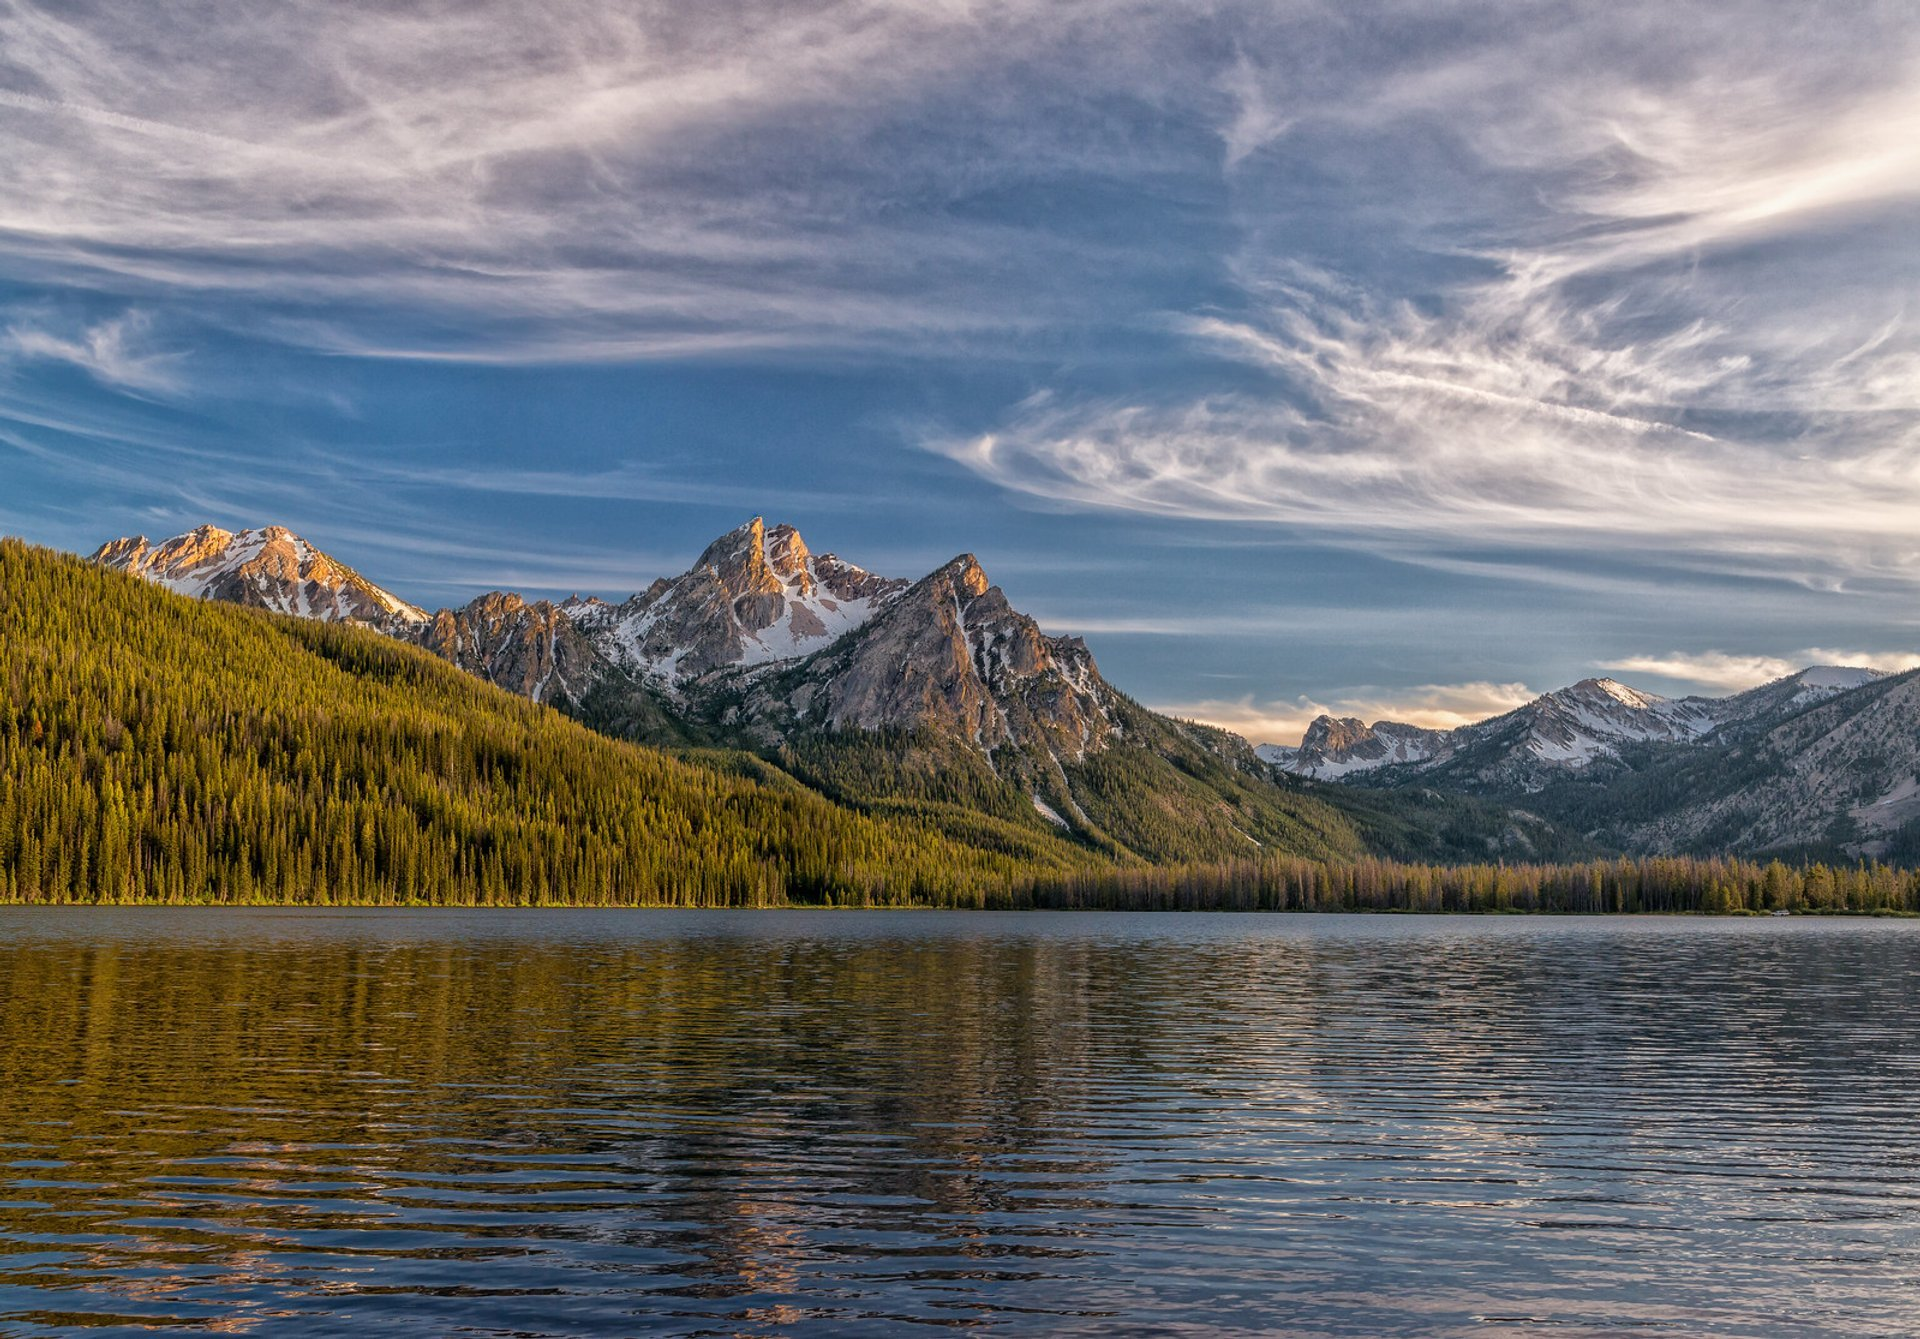 Mt. McGown, one of the many impressive peaks in the Sawtooth range. Taken at Stanley Lake. 2020